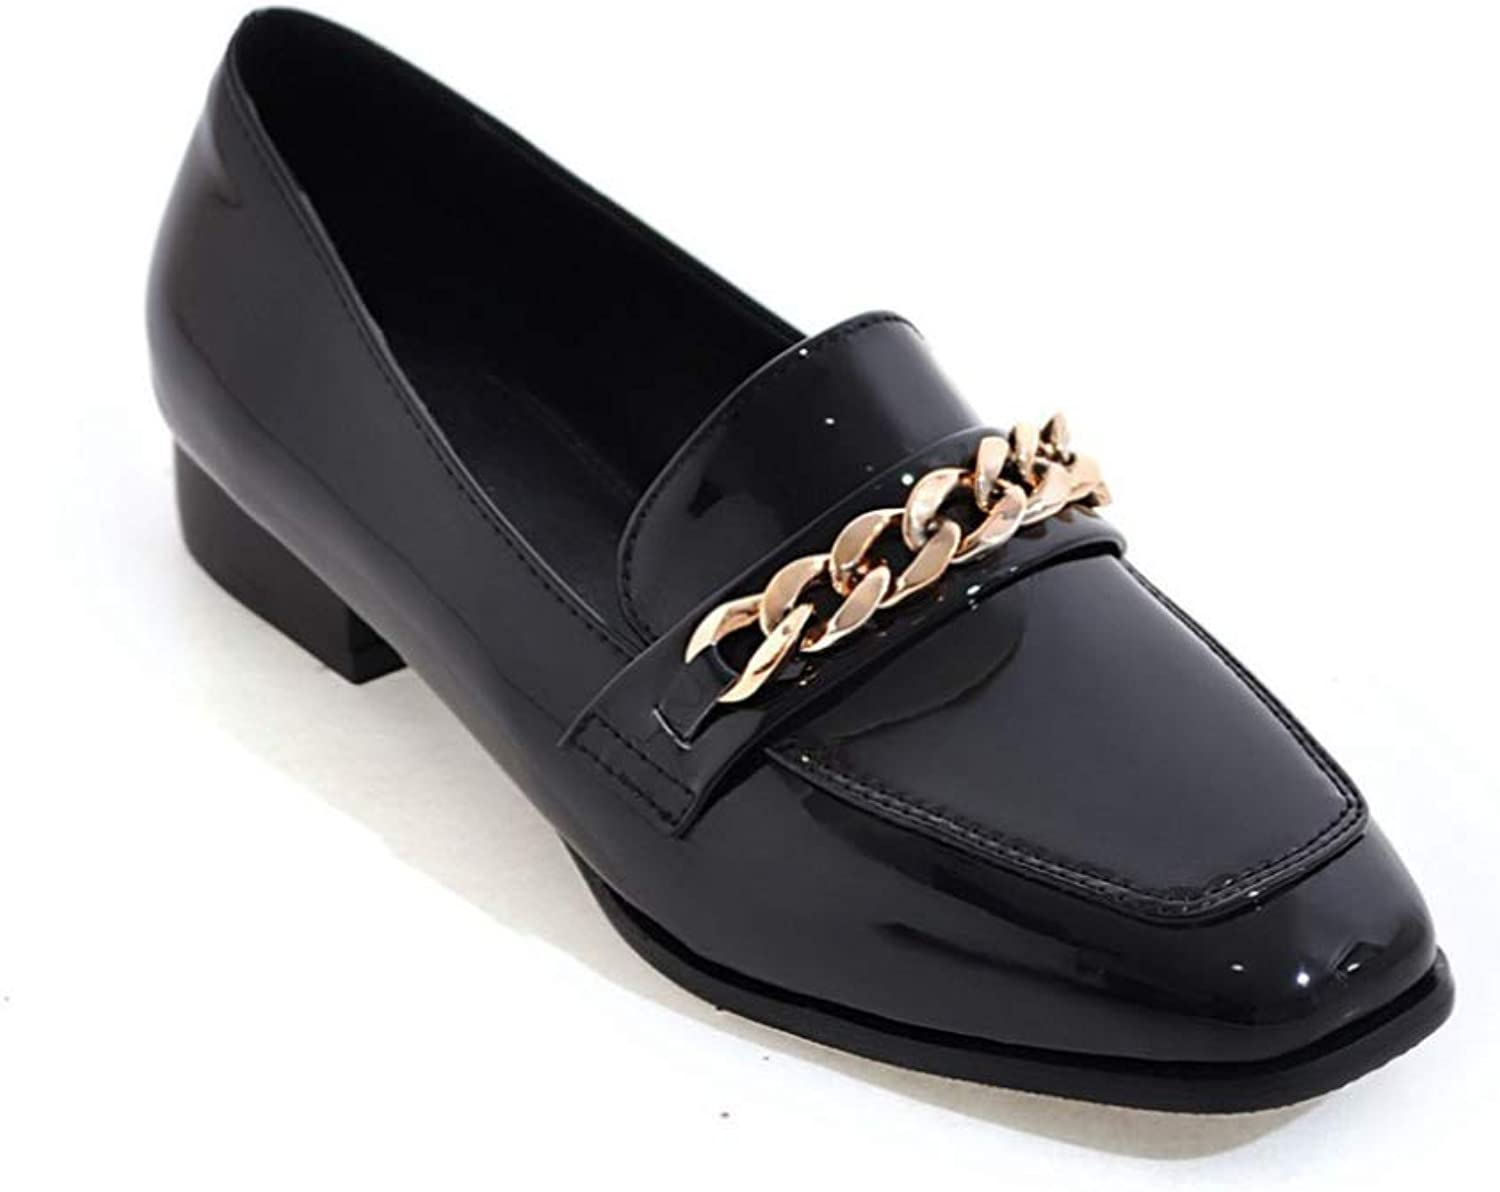 Women's Patent Leather Chain Penny Loafers Low Heel Slip On Square Toe Loafer shoes